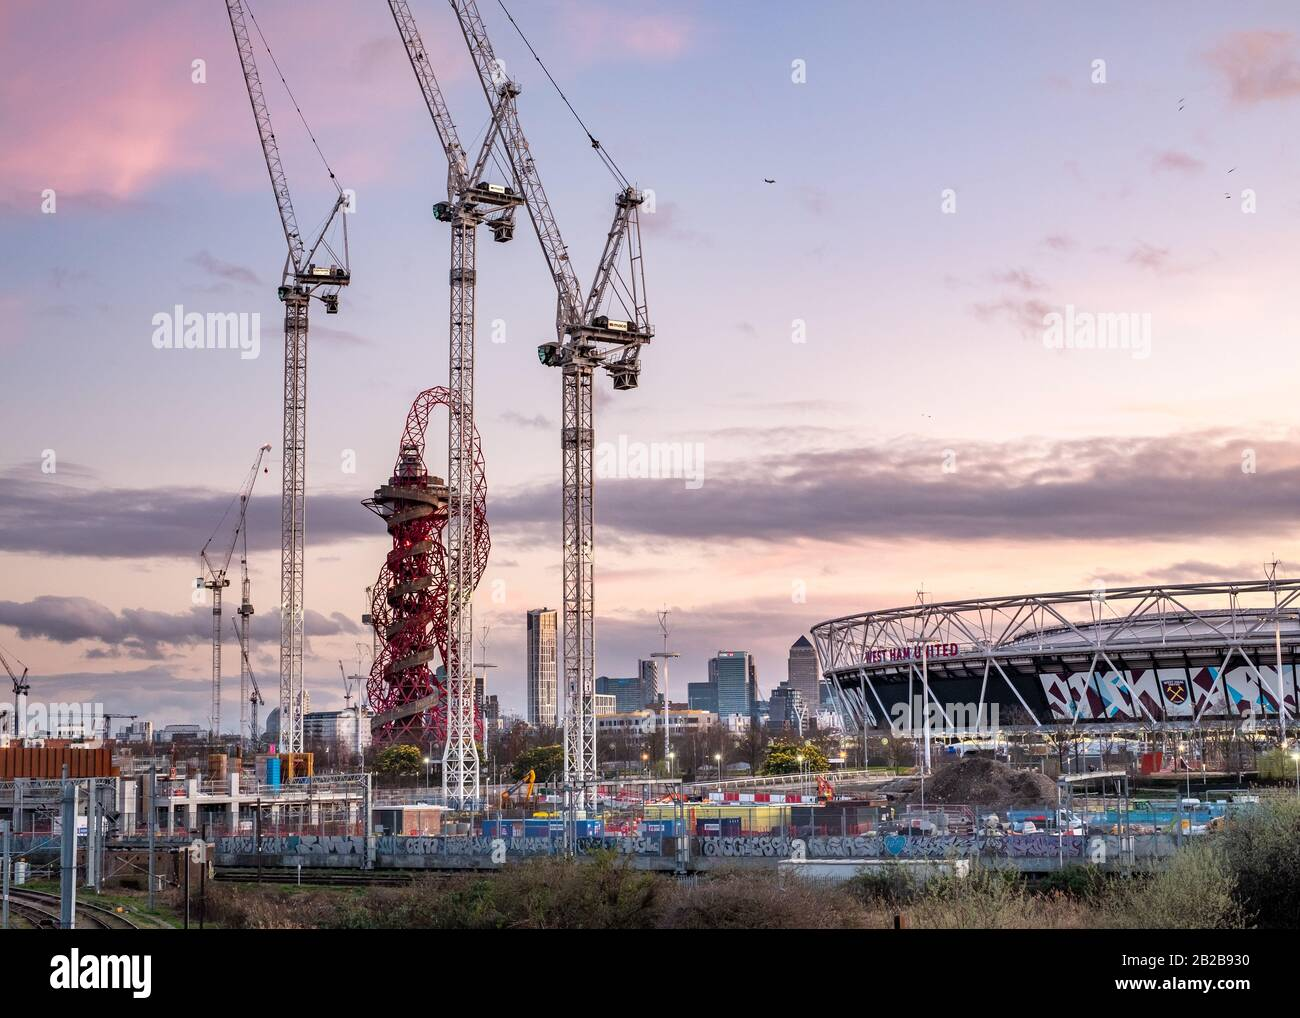 Construction site for East Bank / Stratford Waterside in London Olympic Park, stratford, looking towards the stadium and orbit Stock Photo